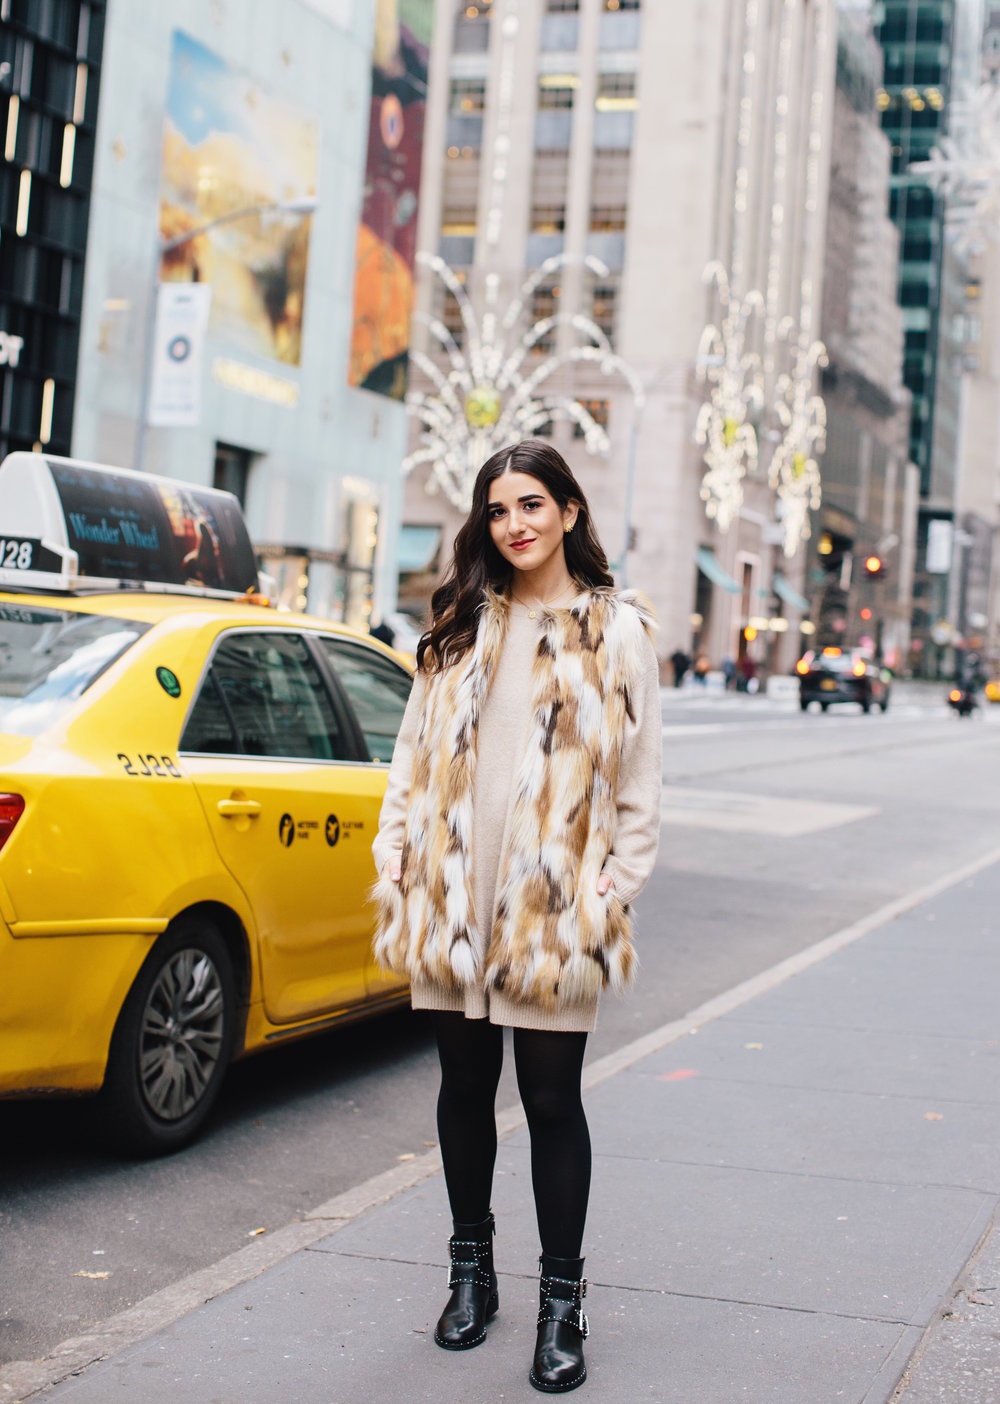 Calico Fur Vest Black Buckle Booties 5 Bad Habits To Ditch In The New Year Esther Santer Fashion Blog NYC Street Style Blogger Outfit OOTD Trendy DSW Shoes Women Girl Holiday Season Window Shopping New York City  Beige Sweater Dress Tights Winter Cozy.JPG